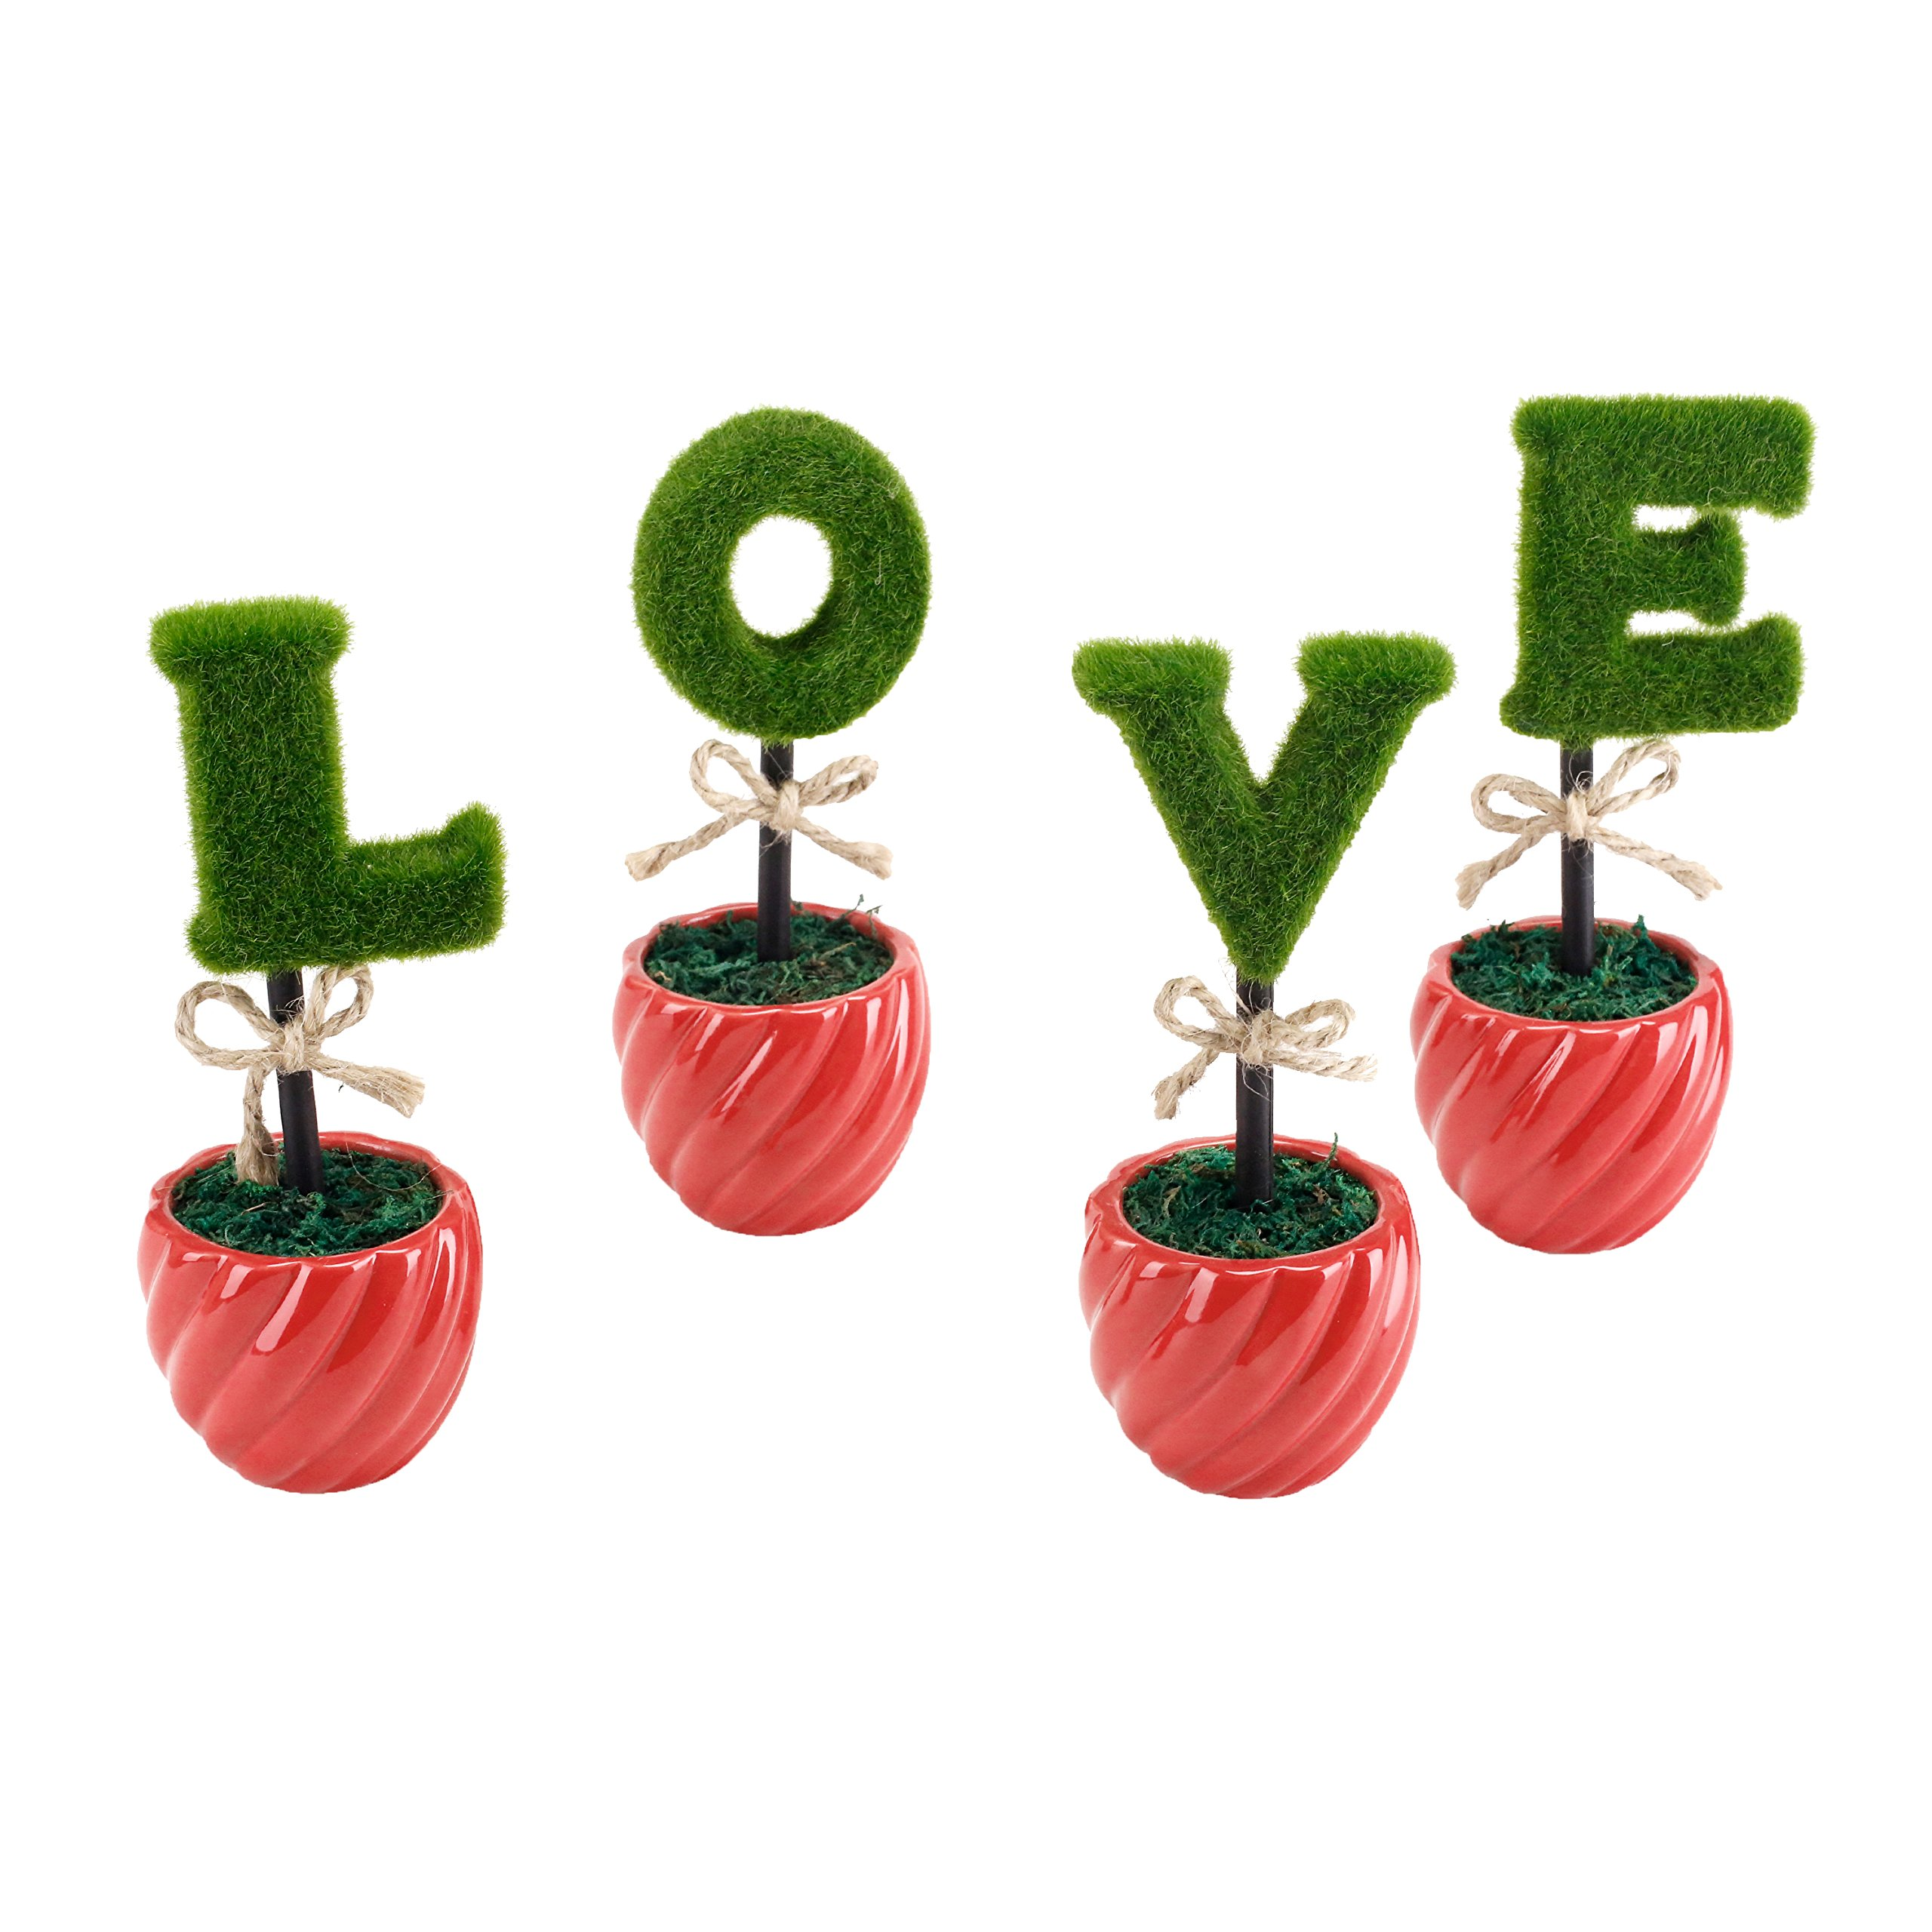 MyGift LOVE Artificial Sculpted Topiary Set, Decorative Faux Hedge Letters with Red Ceramic Pots by MyGift